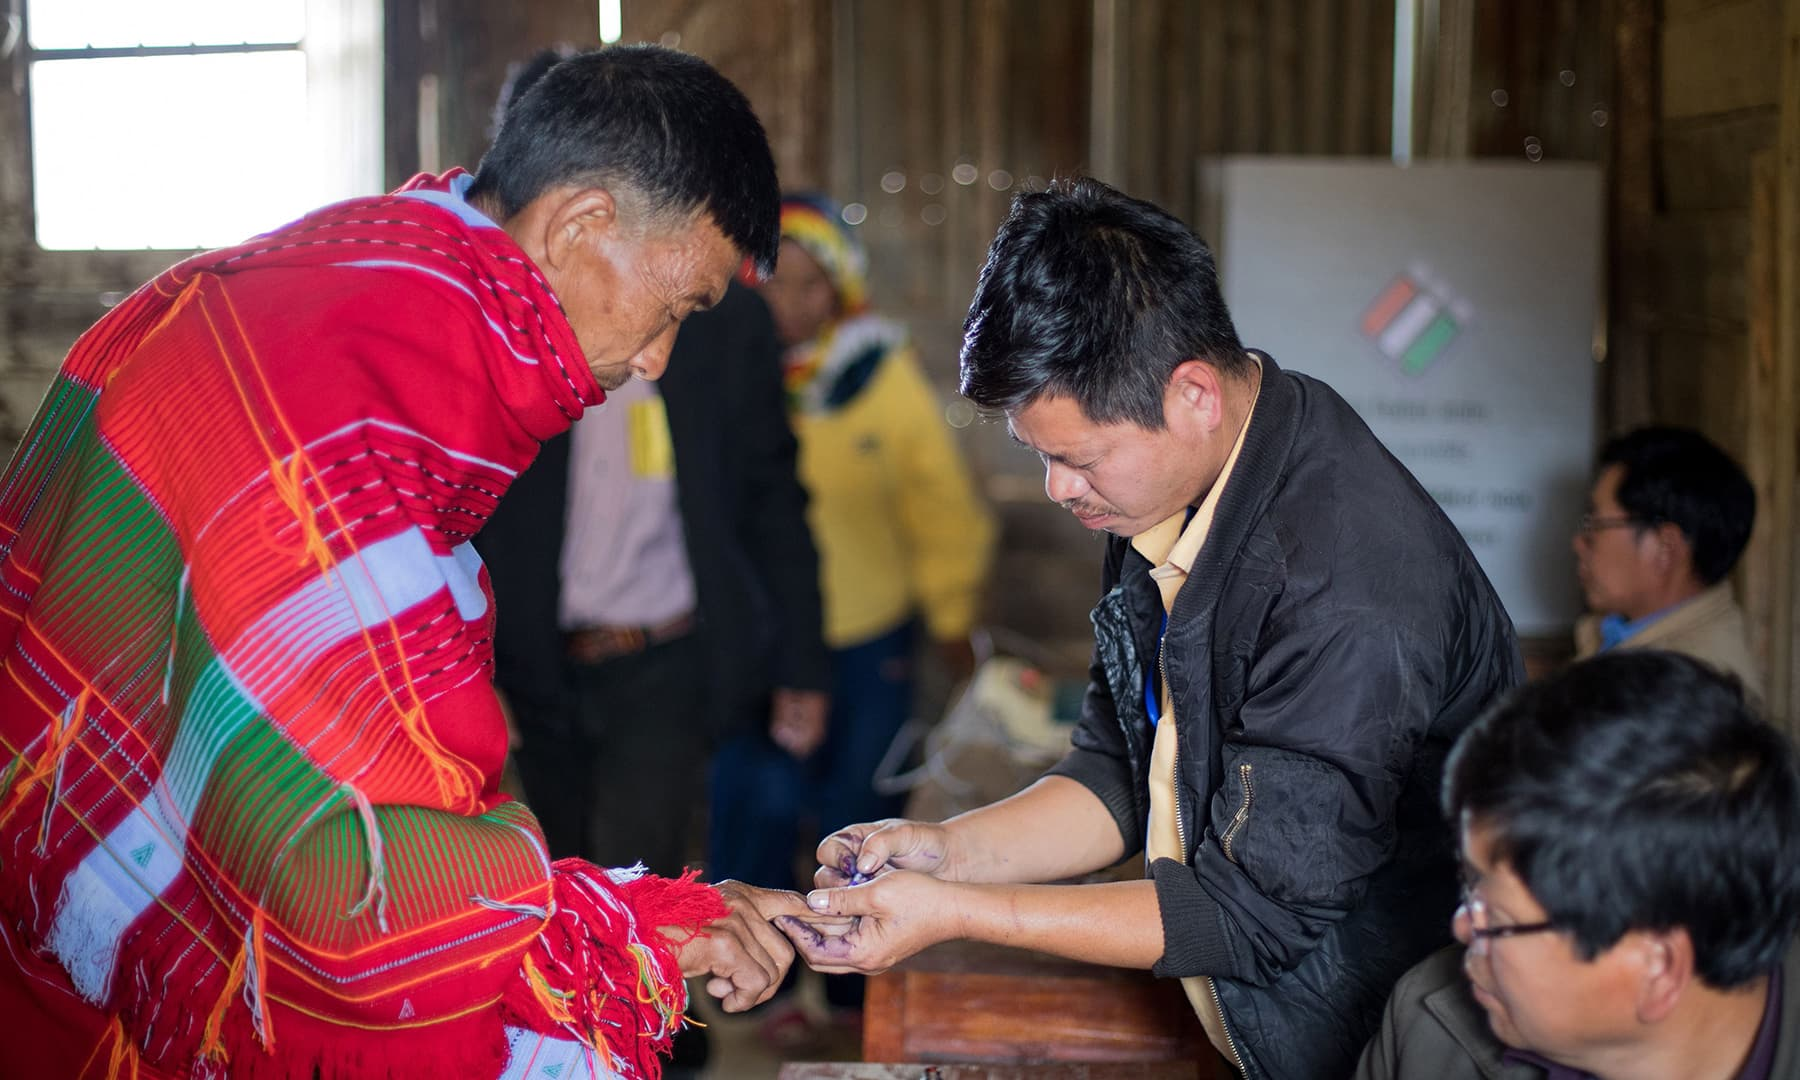 A polling officer puts an ink mark on an Indian tribal voter's finger before he casts his vote for the first phase of India's general election in Ukhrul district in the northeastern state of Manipur on April 11, 2019. — AFP